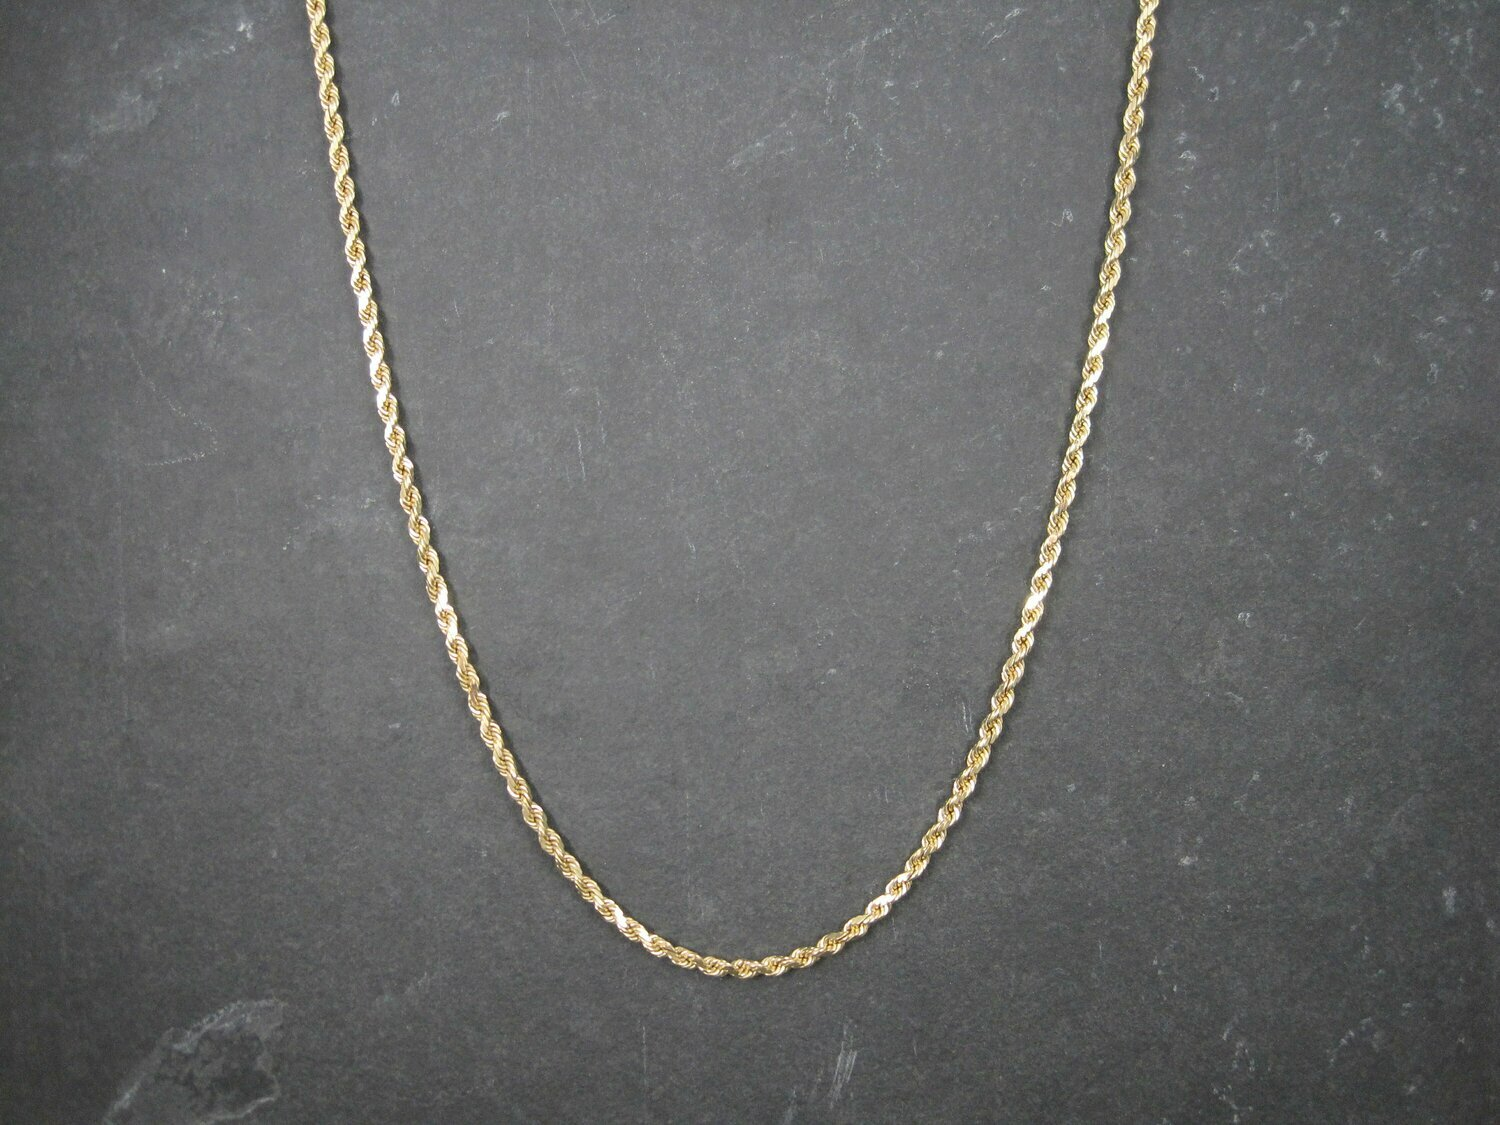 Vintage 14K 3.5mm Rope Chain Necklace 29 Inches 34.3 Grams